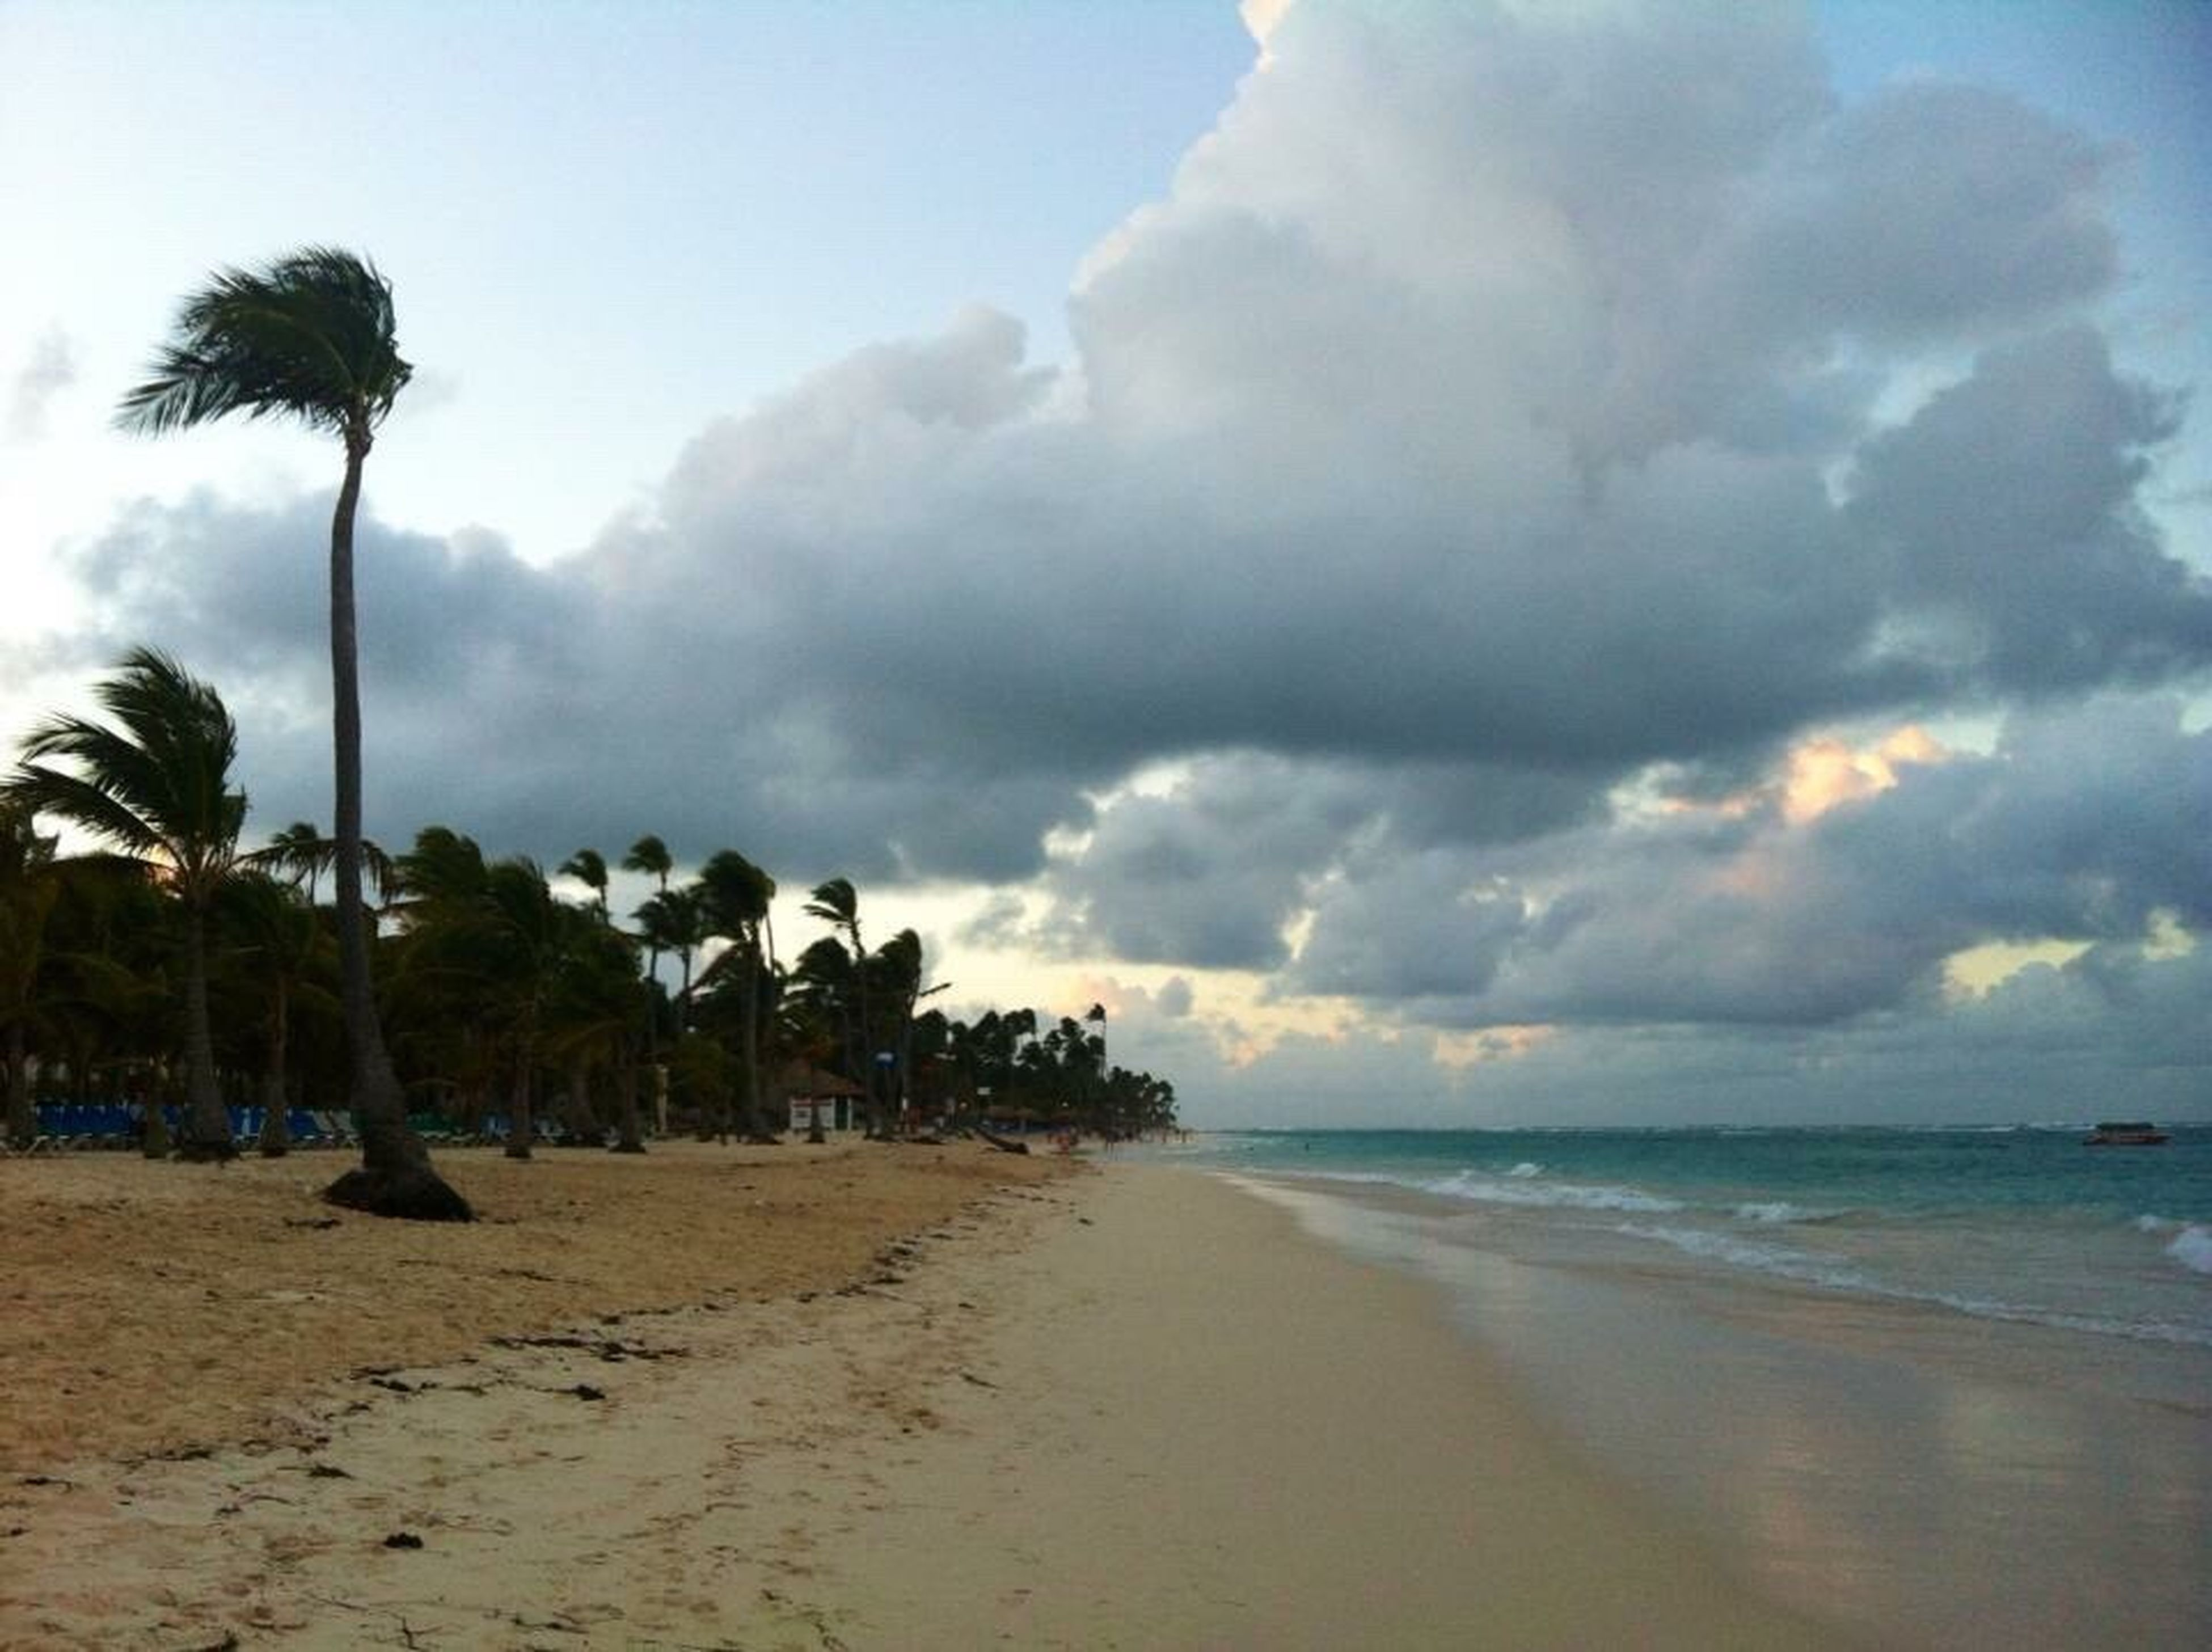 beach, sea, palm tree, sky, horizon over water, sand, shore, water, tranquil scene, tranquility, tree, scenics, beauty in nature, cloud - sky, nature, cloud, cloudy, coastline, idyllic, vacations